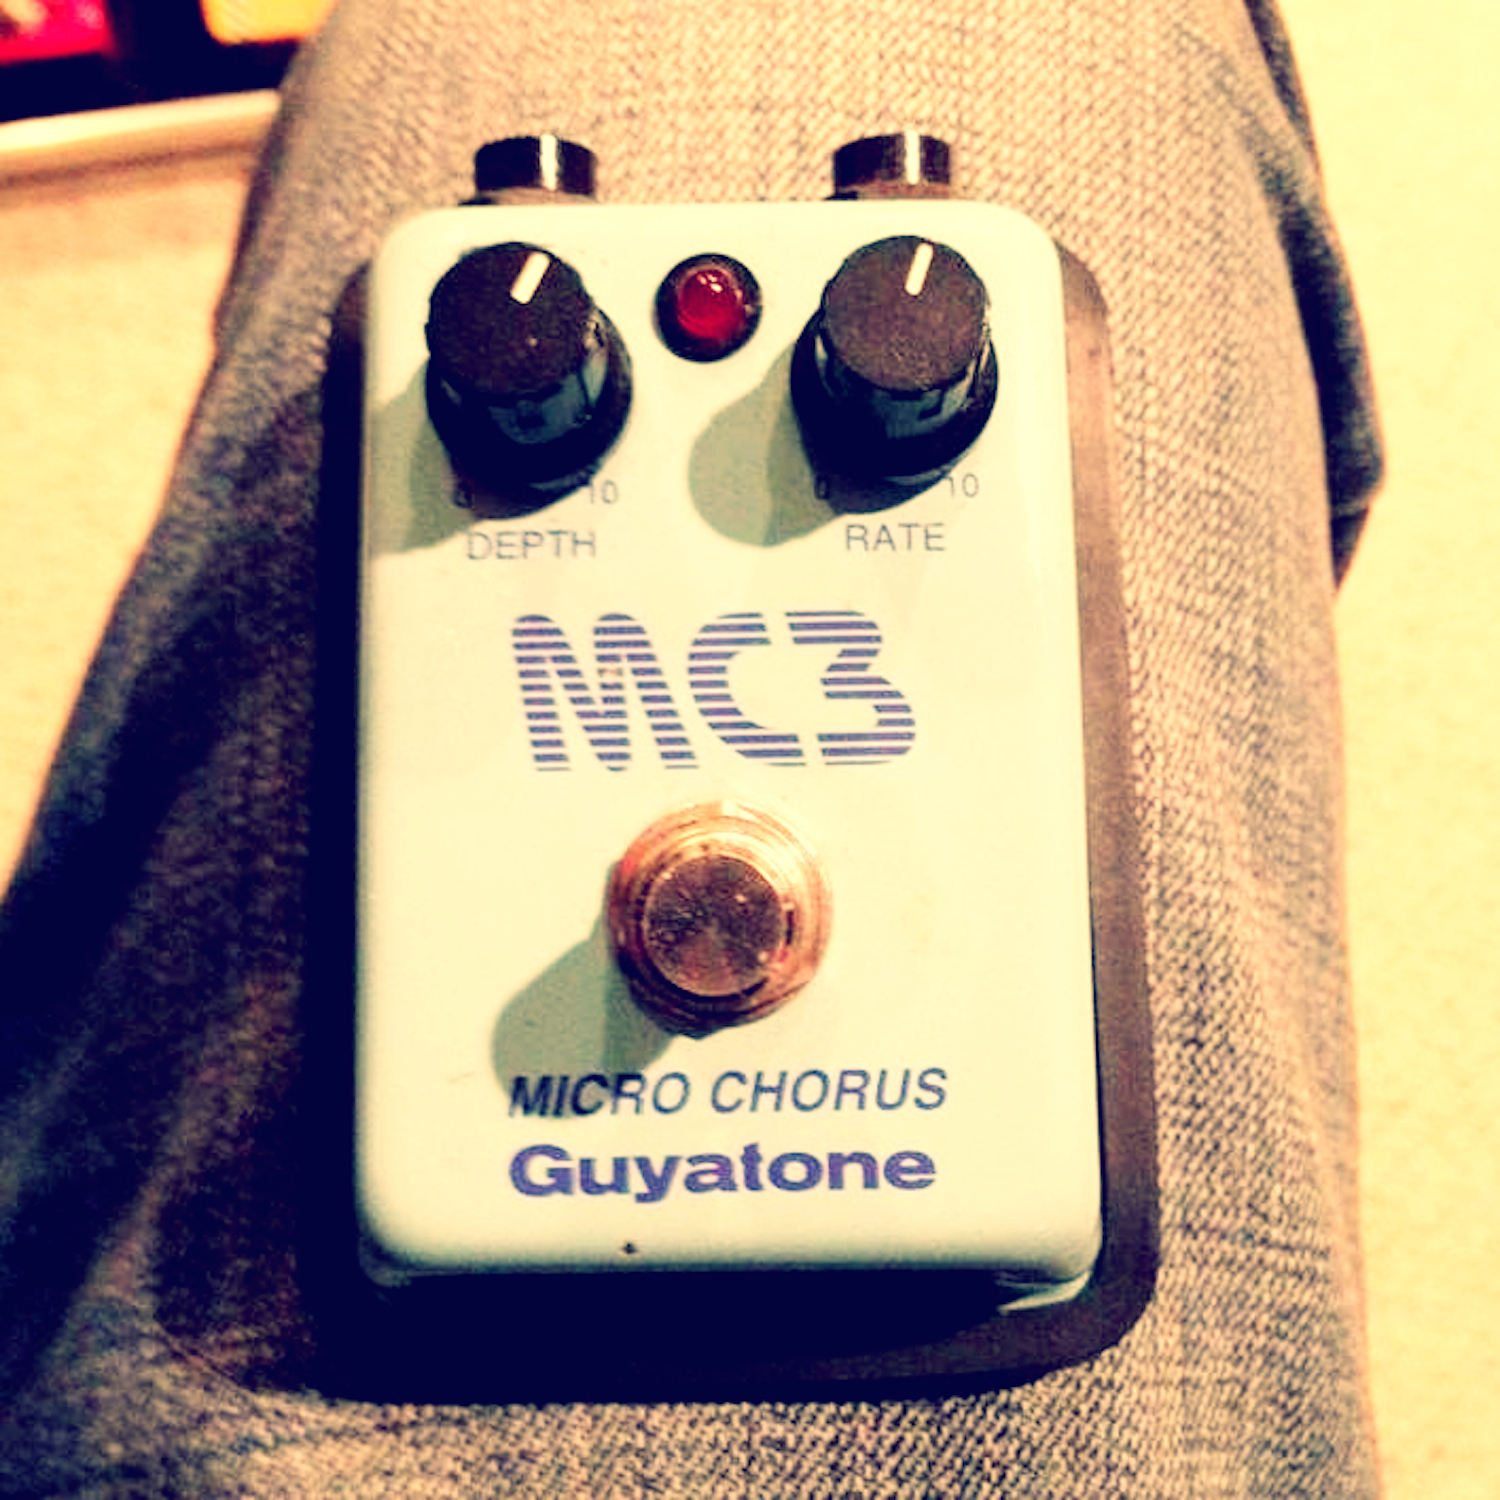 Godlyke Archives Pedal Of The Day Technology Autowahs Envelopecontrolled Filters Guyatone Mc3 Micro Chorus